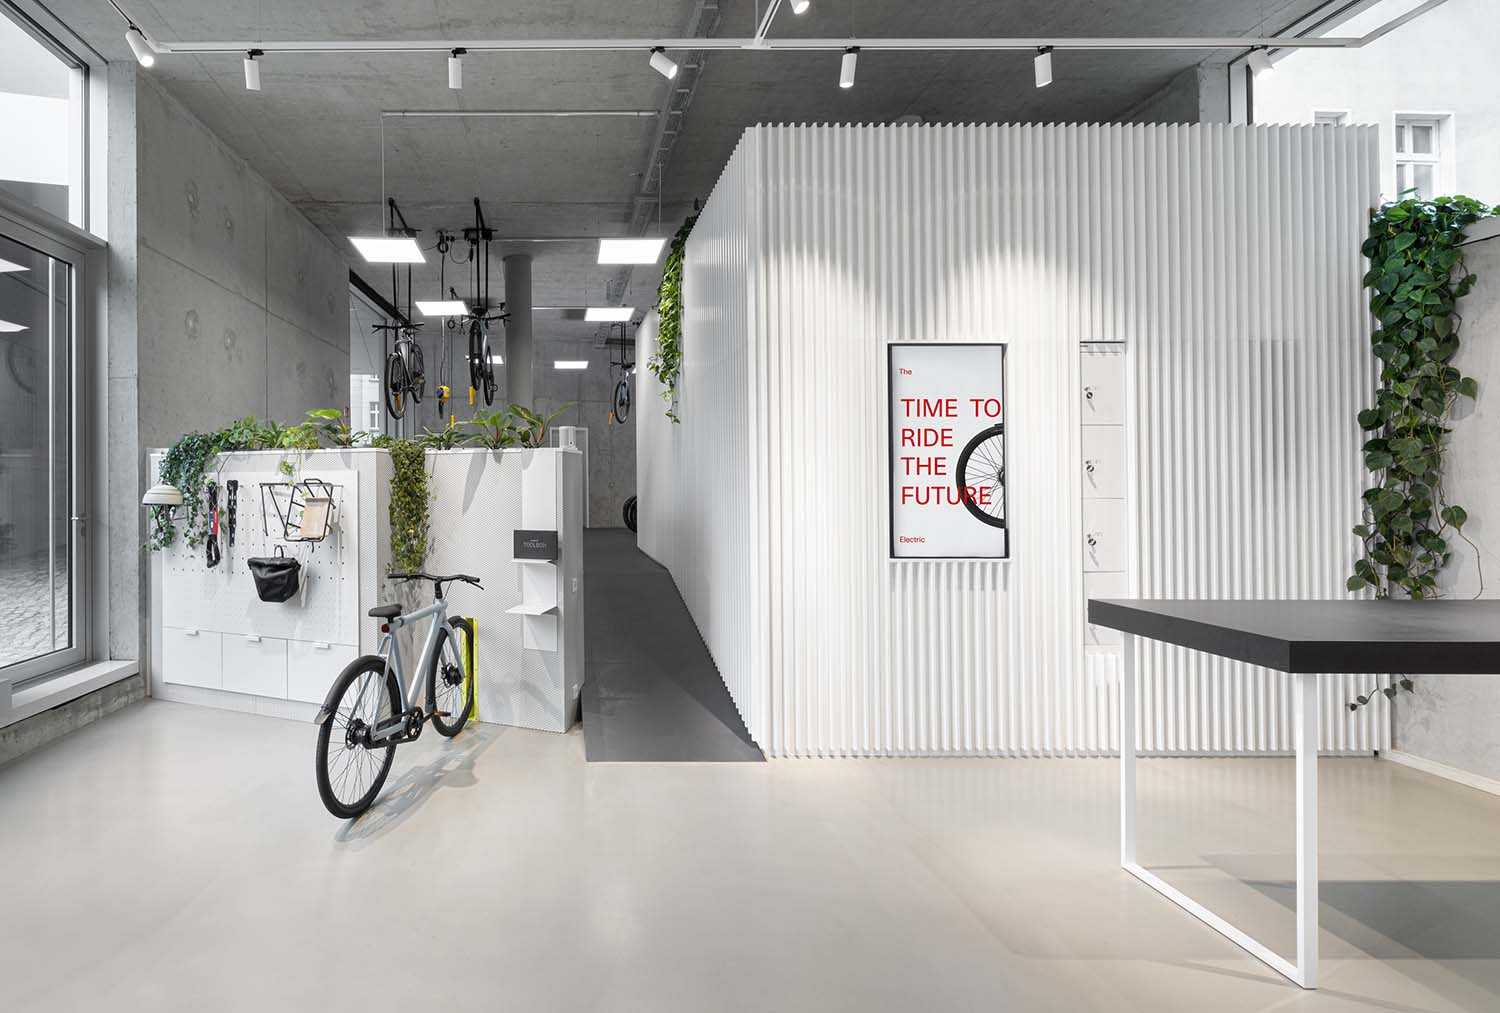 Vanmoof Berlin, Torstraße Bike Shop Designed by Ninetynine